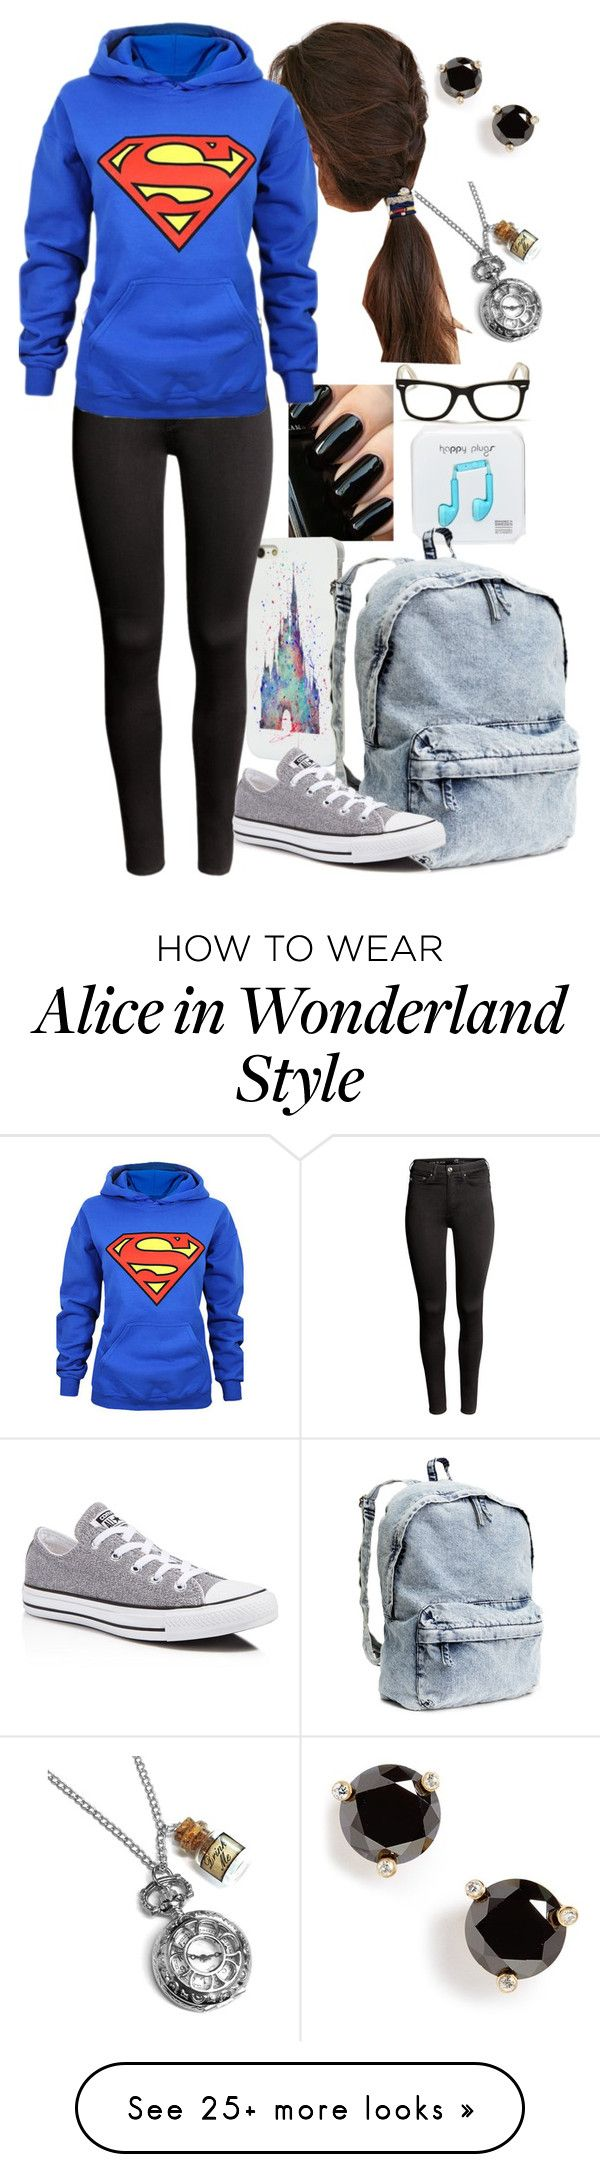 """""""Superman"""" by stepupdancer on Polyvore featuring moda, Happy Plugs, Kate Spade, Disney, JEM, H&M, Converse y Ray-Ban"""